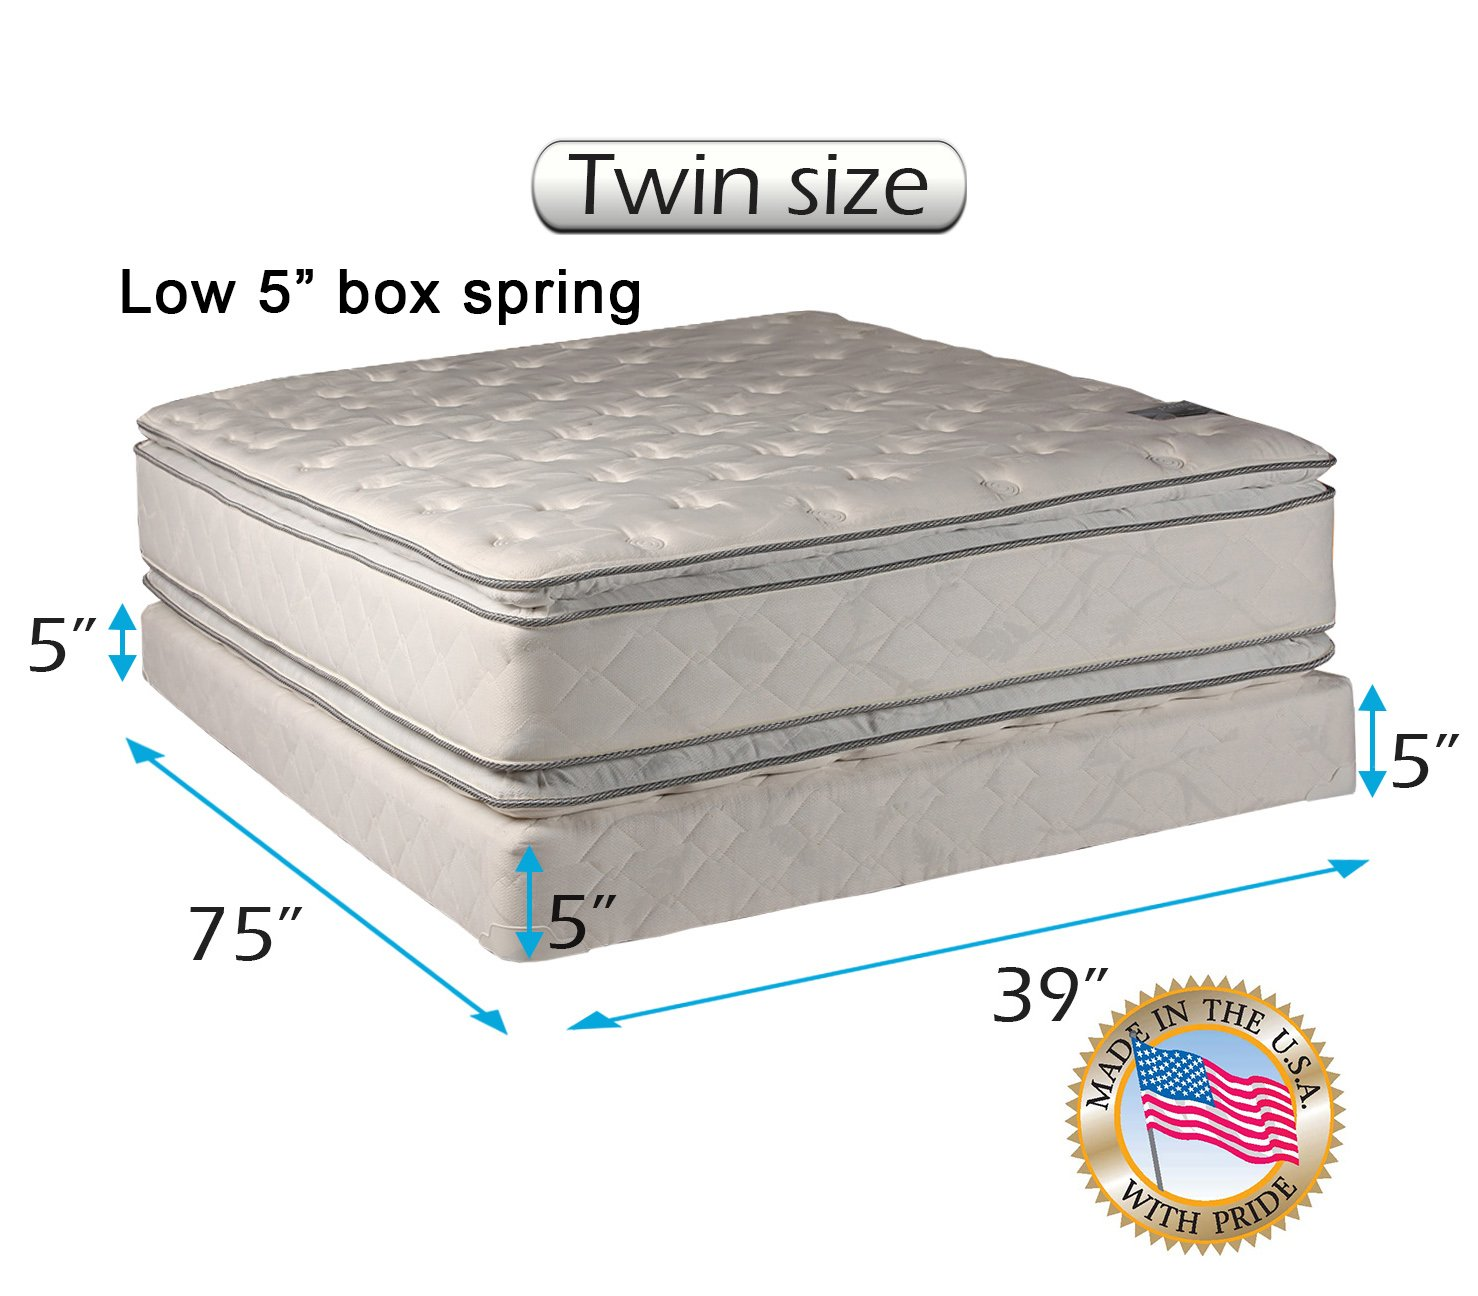 Dream Solutions USA Brand Soft PillowTop Mattress and Low Height Box Spring Set (Twin Size) Double-Sided Sleep System with Enhanced Cushion Support- Fully Assembled, Back Support, Longlasting Quality by Dream Solutions USA